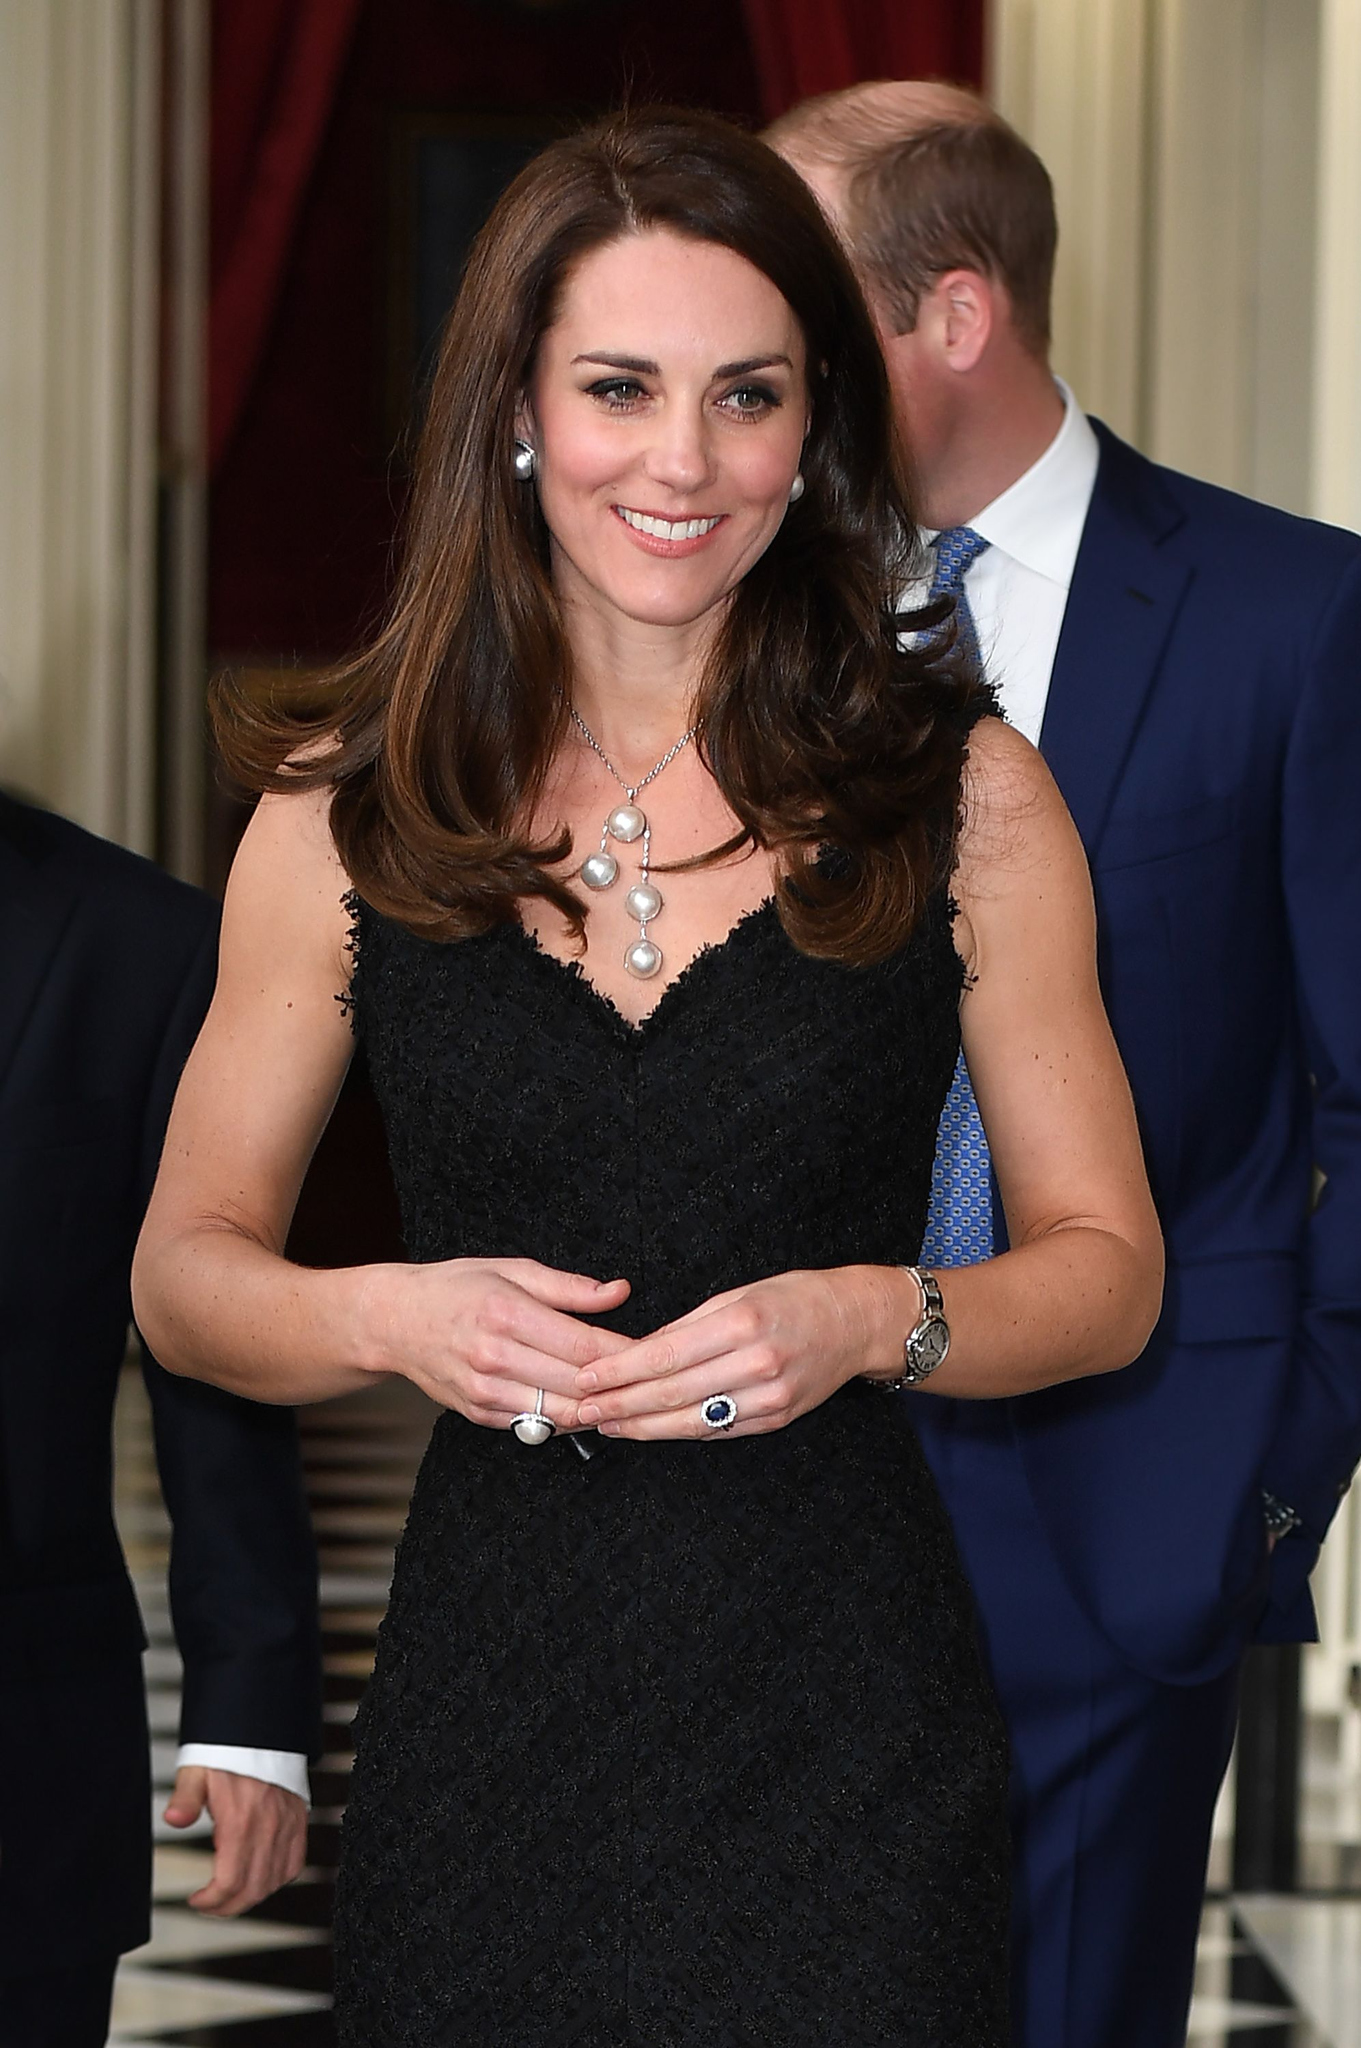 """28 Days UK OutMandatory Credit: Photo by REX/Shutterstock (8523329l)Catherine Duchess of CambridgePrince William and Catherine Duchess of Cambridge visit to Paris, France - 17 Mar 2017The Duke and Duchess of Cambridge attend a reception to mark the launch of """"Les Voisins"""" hosted by the British Ambassador at the British Embassy"""